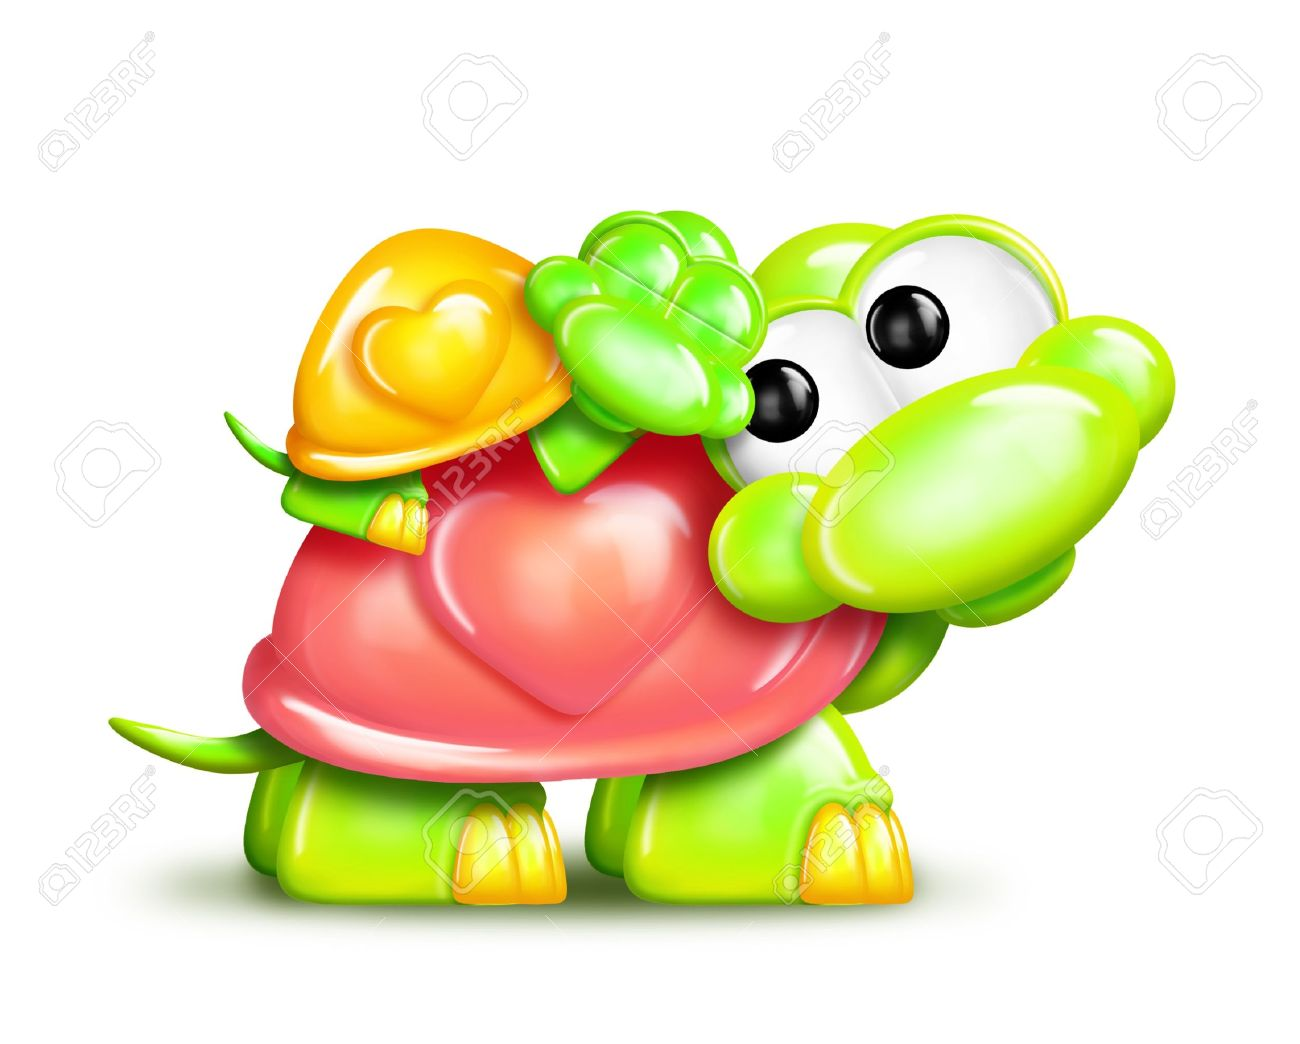 Mama and baby turtle clipart clipart royalty free library Whimsical Cartoon Turtle With Baby On Back Stock Photo, Picture ... clipart royalty free library